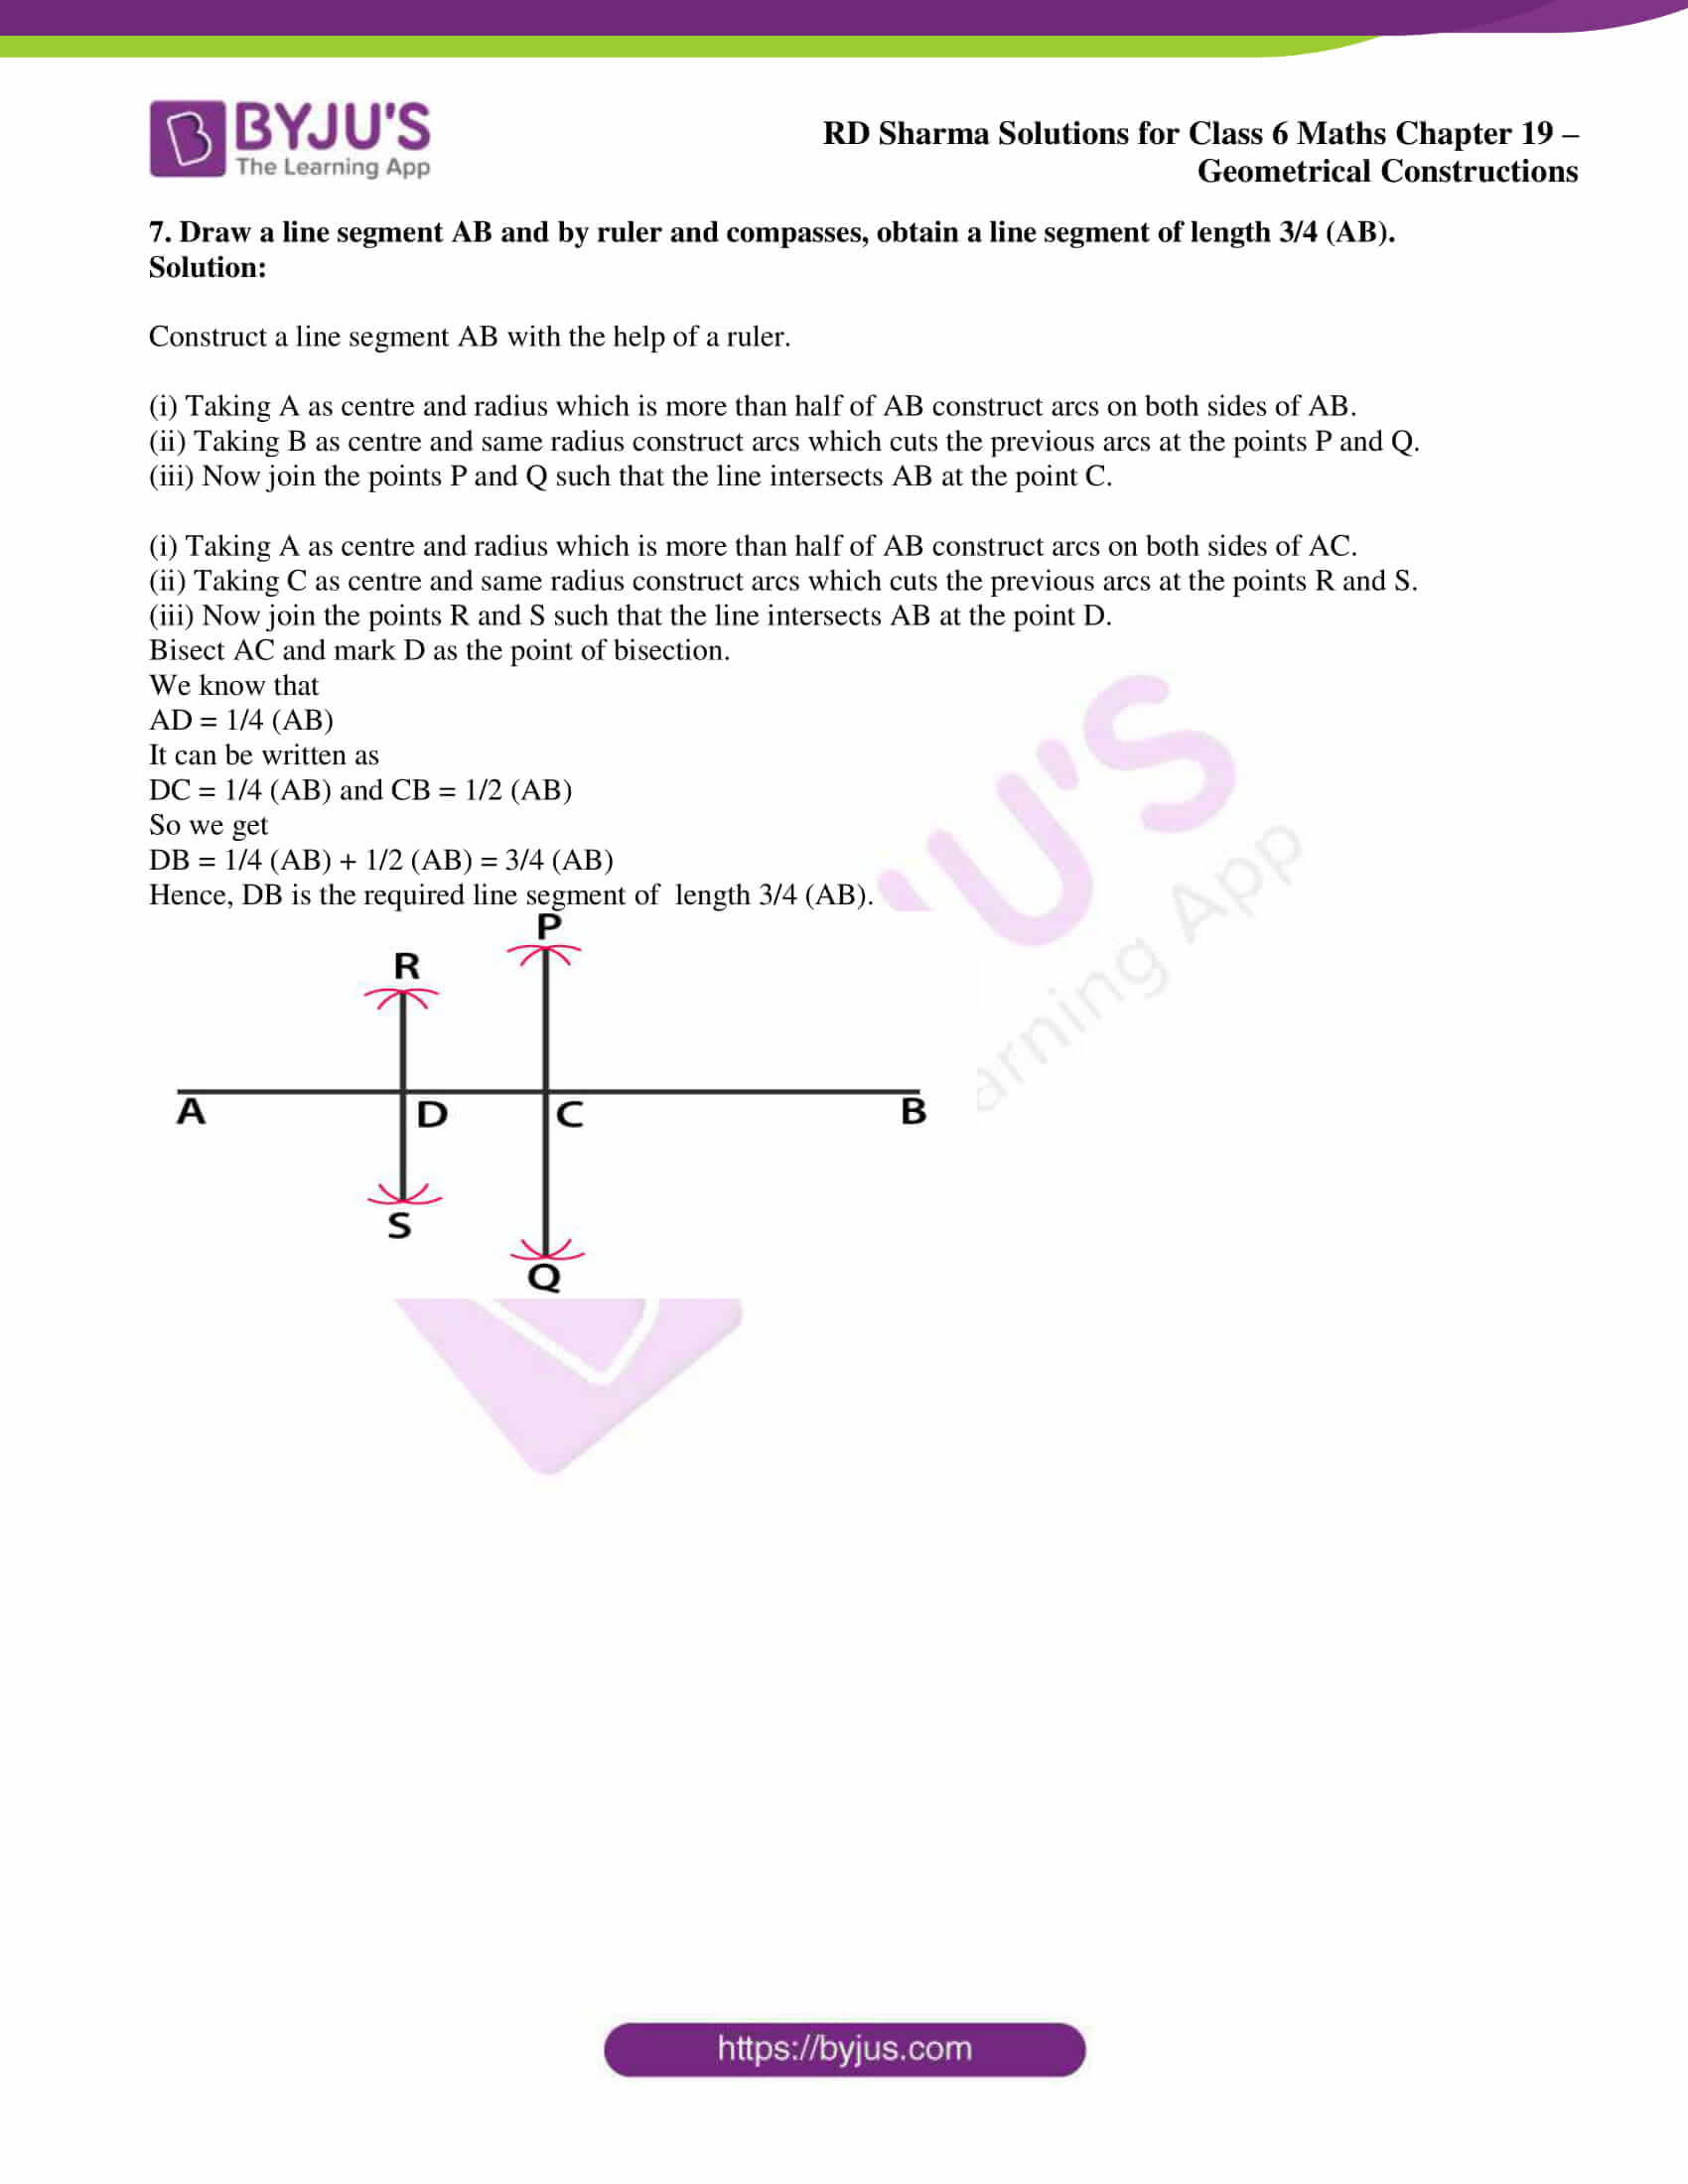 rd sharma solutions nov2020 class 6 maths chapter 19 exercise 3 4